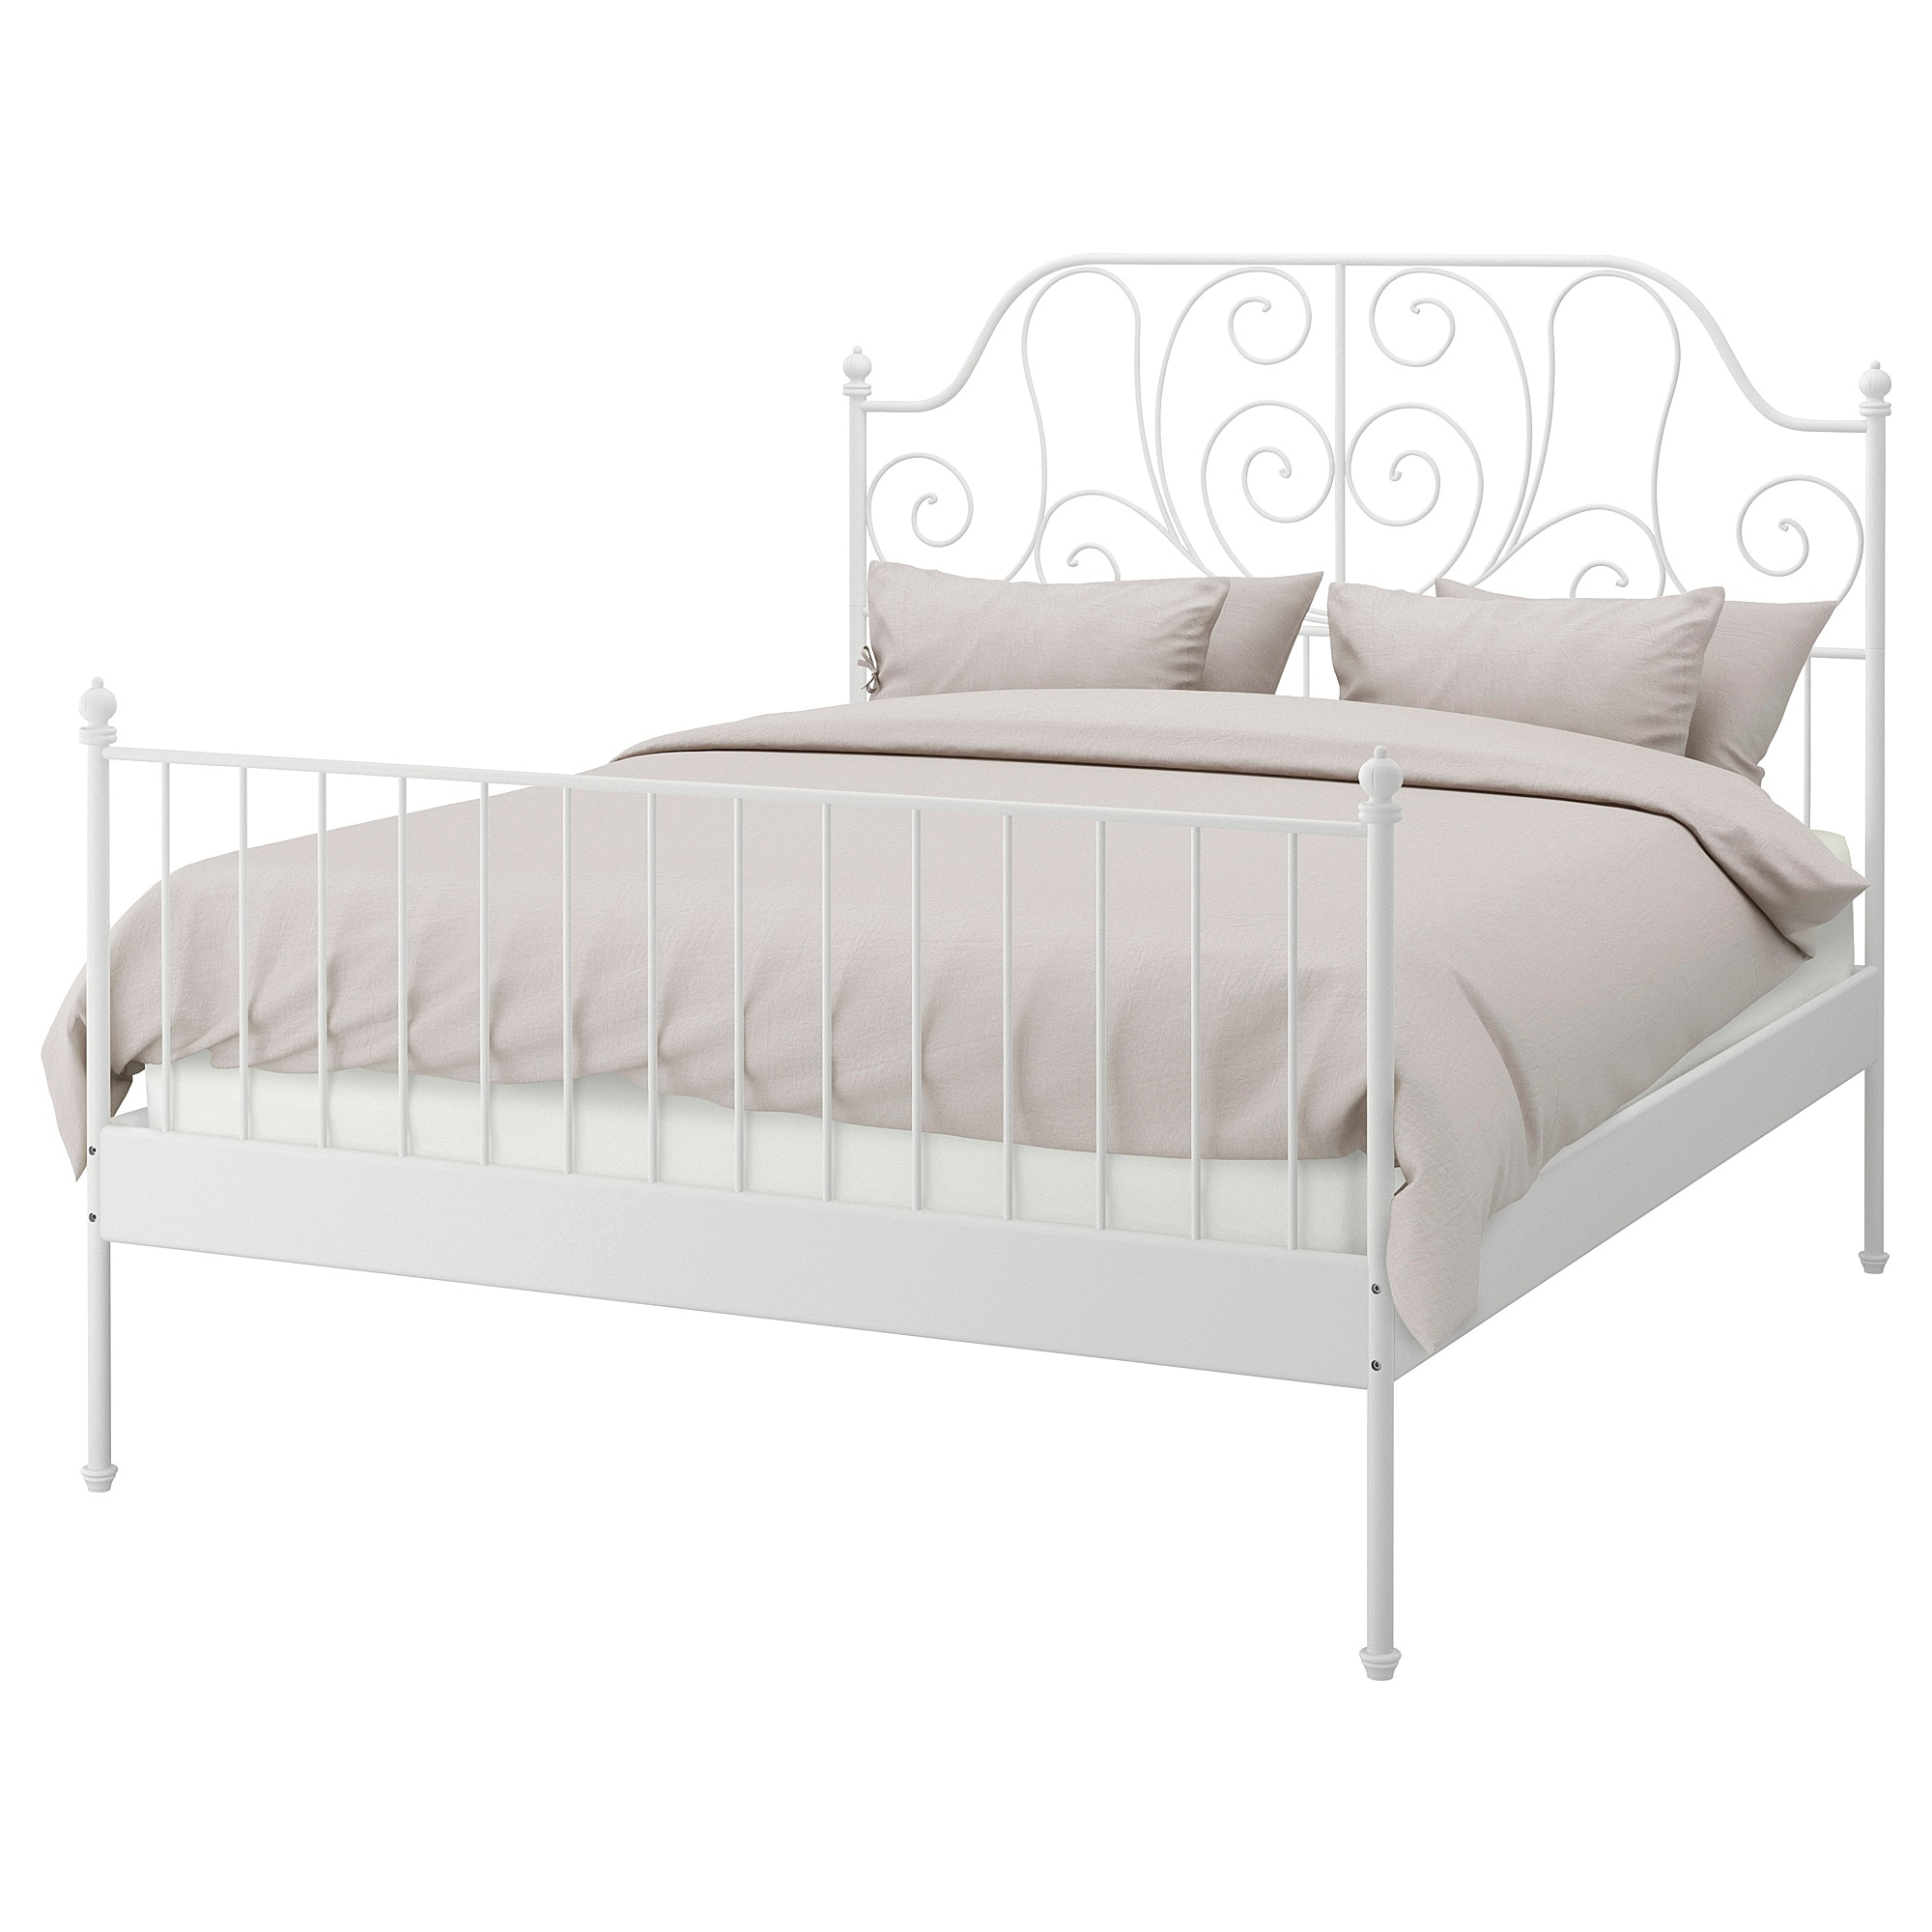 LEIRVIK Bed frame white, Luröy Full (With images) Bed